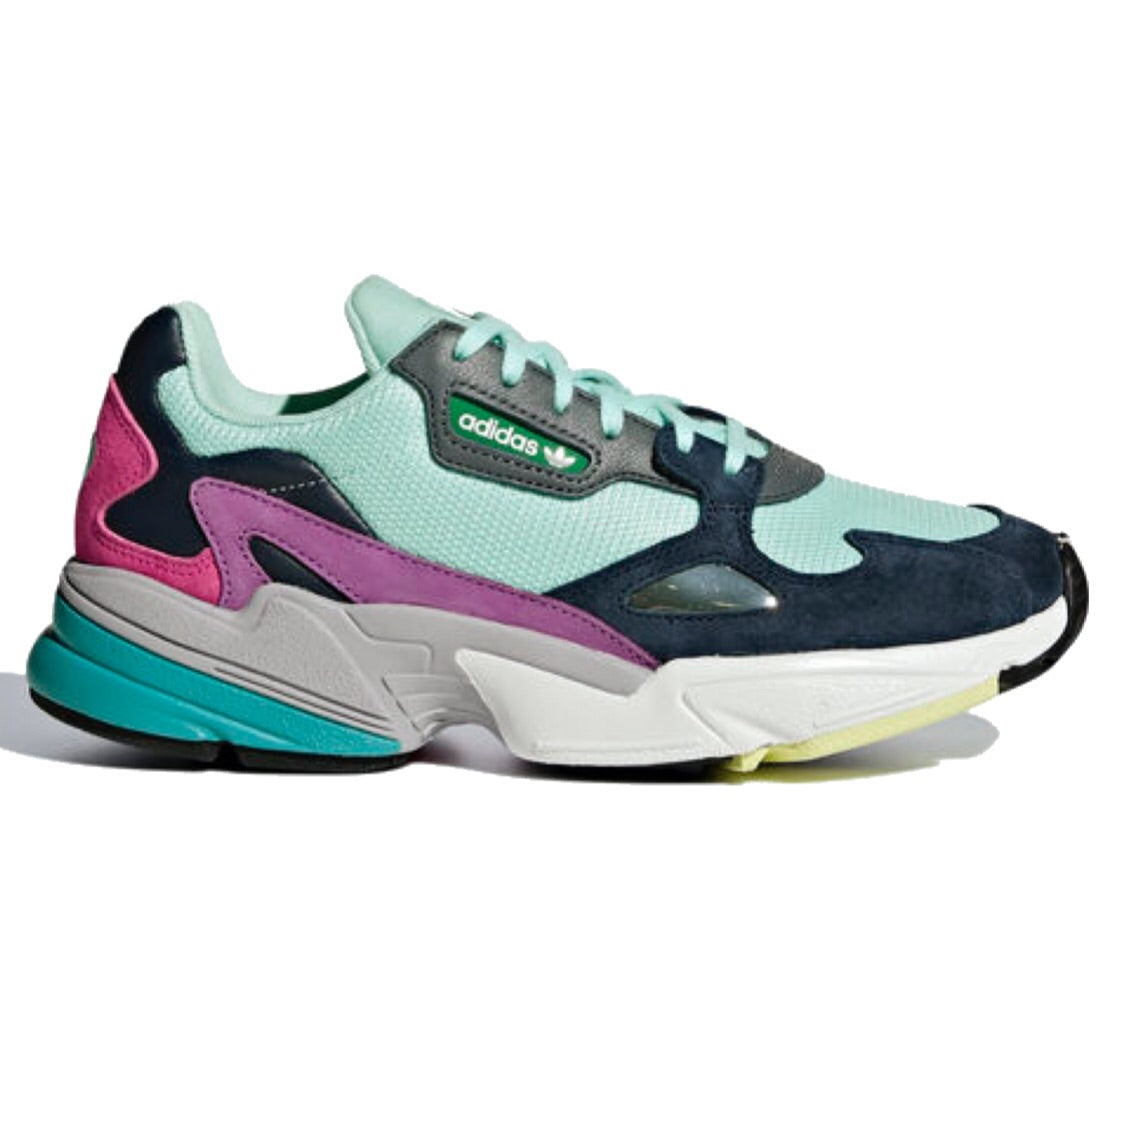 exquisite style best sell price reduced adidas falcon w clear mint sneaker